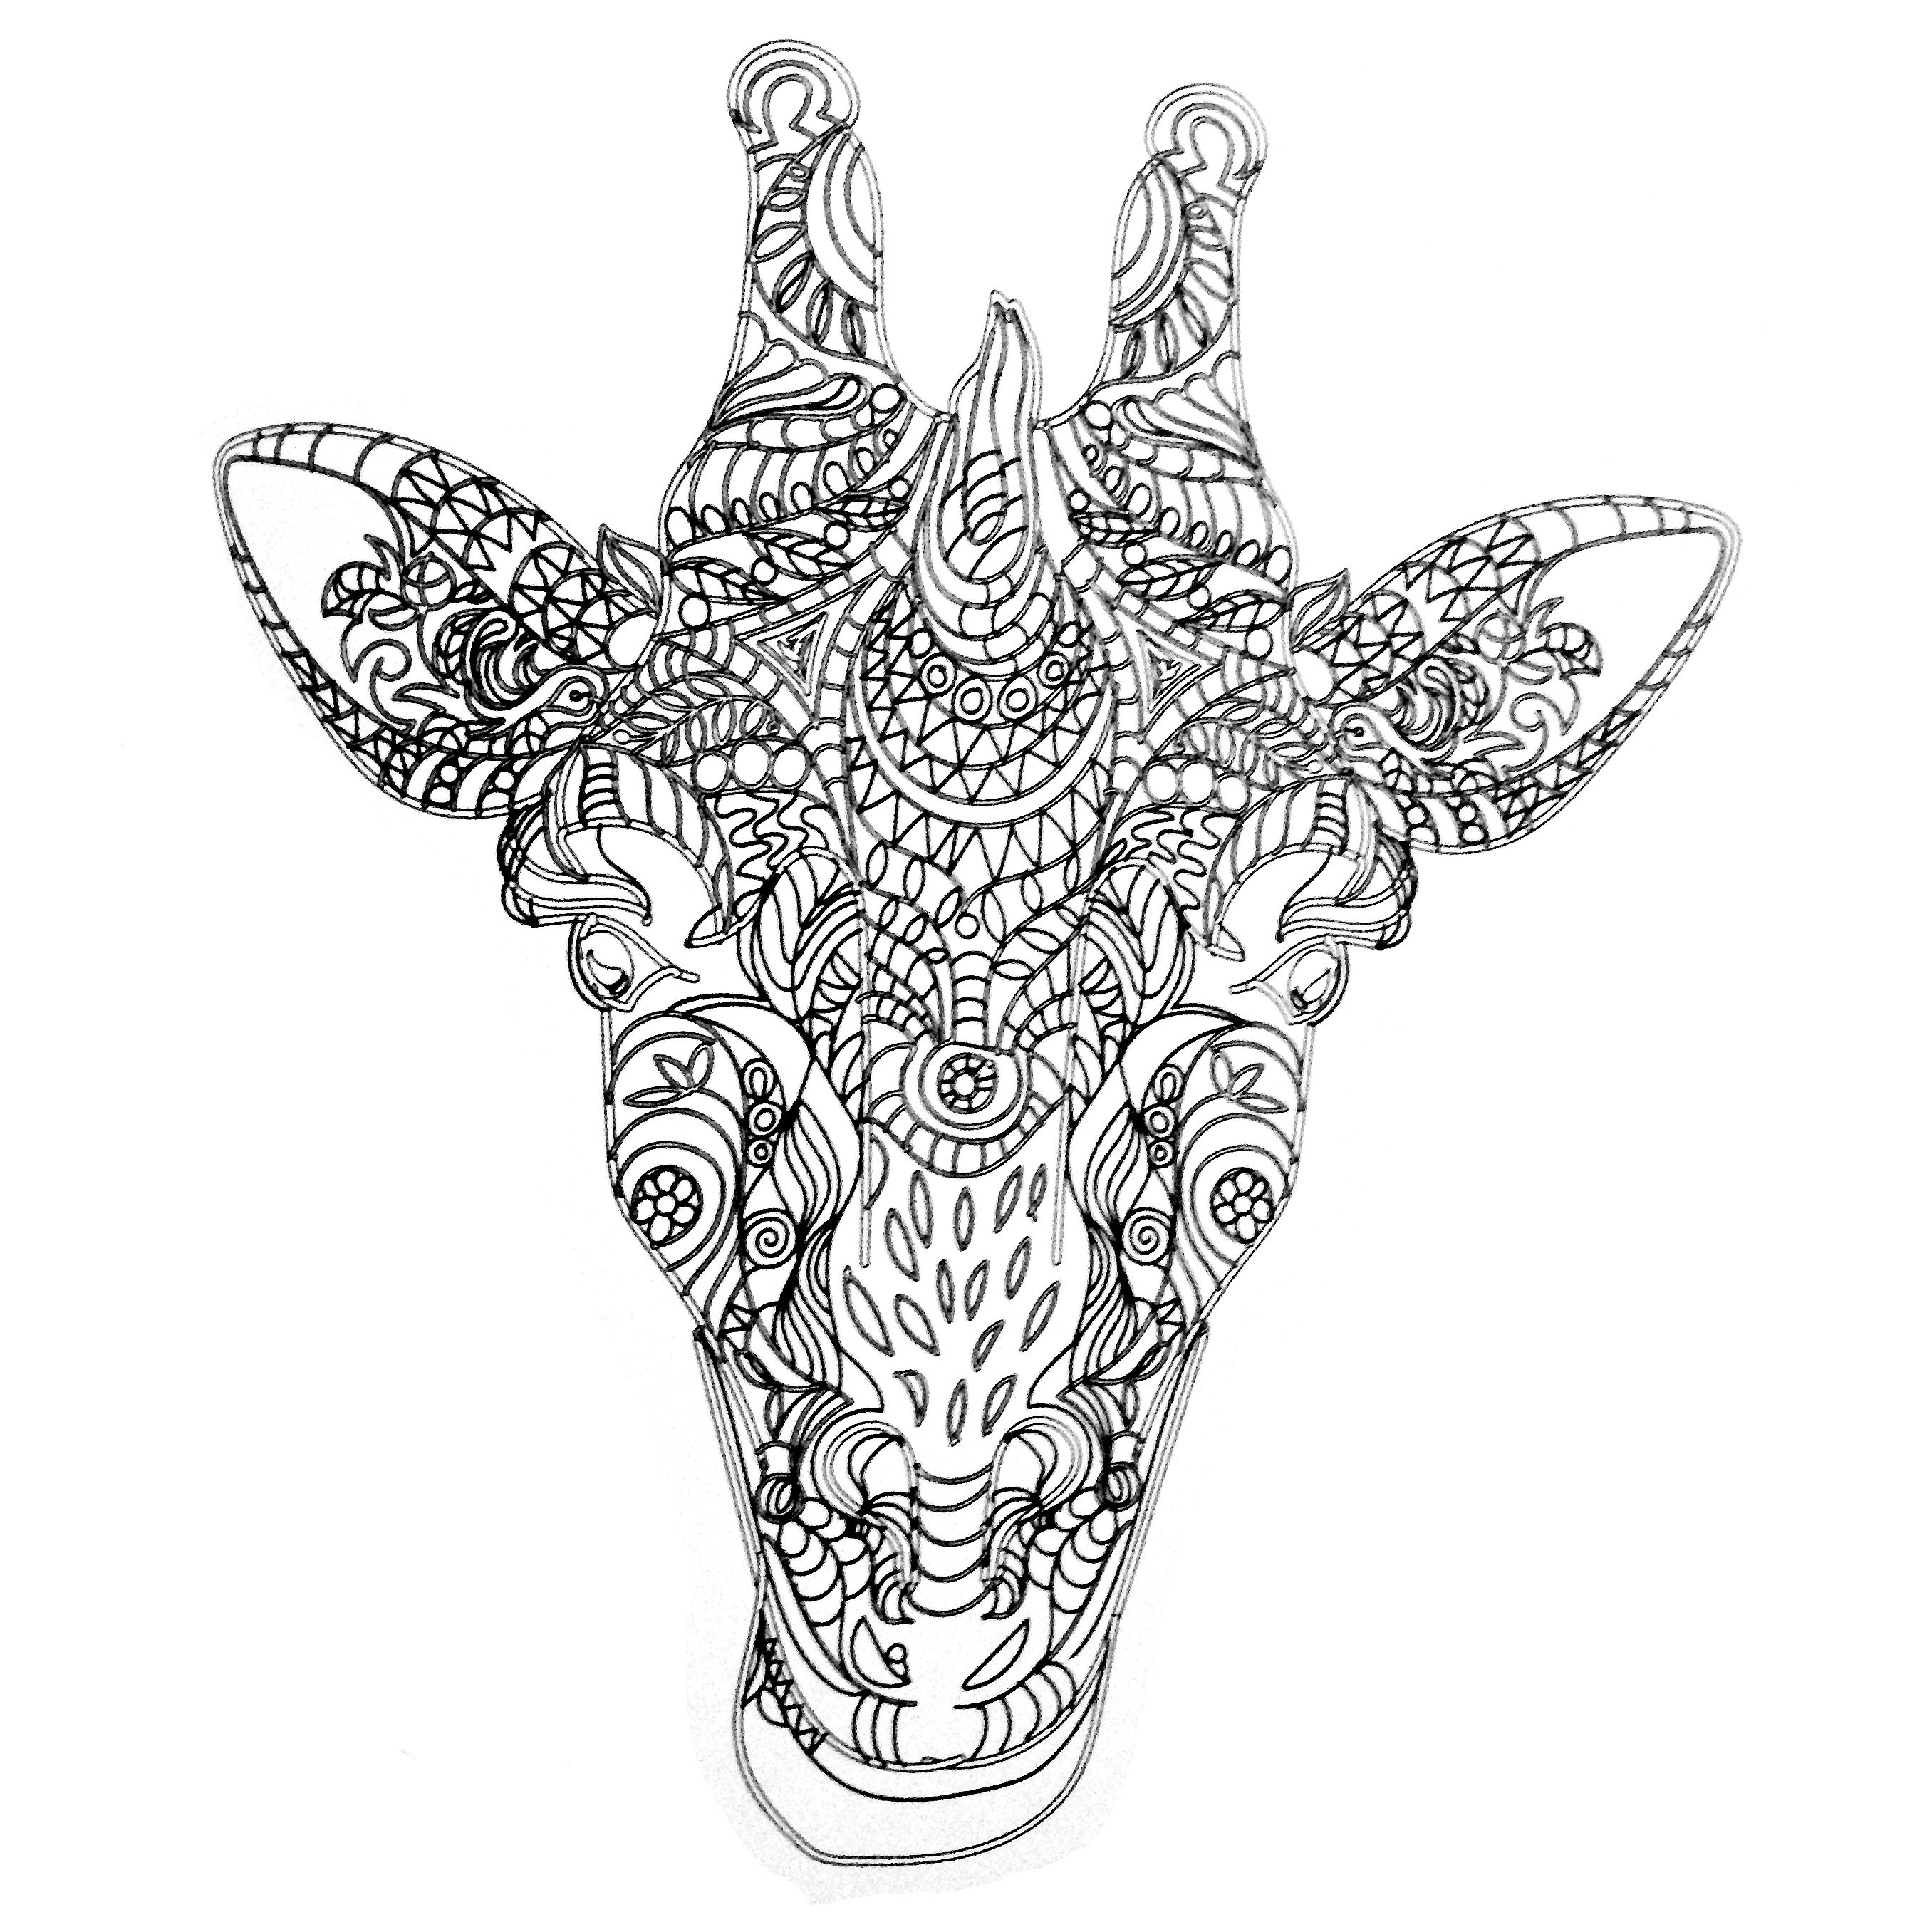 colors of nature colouring book giraffe coloring pages